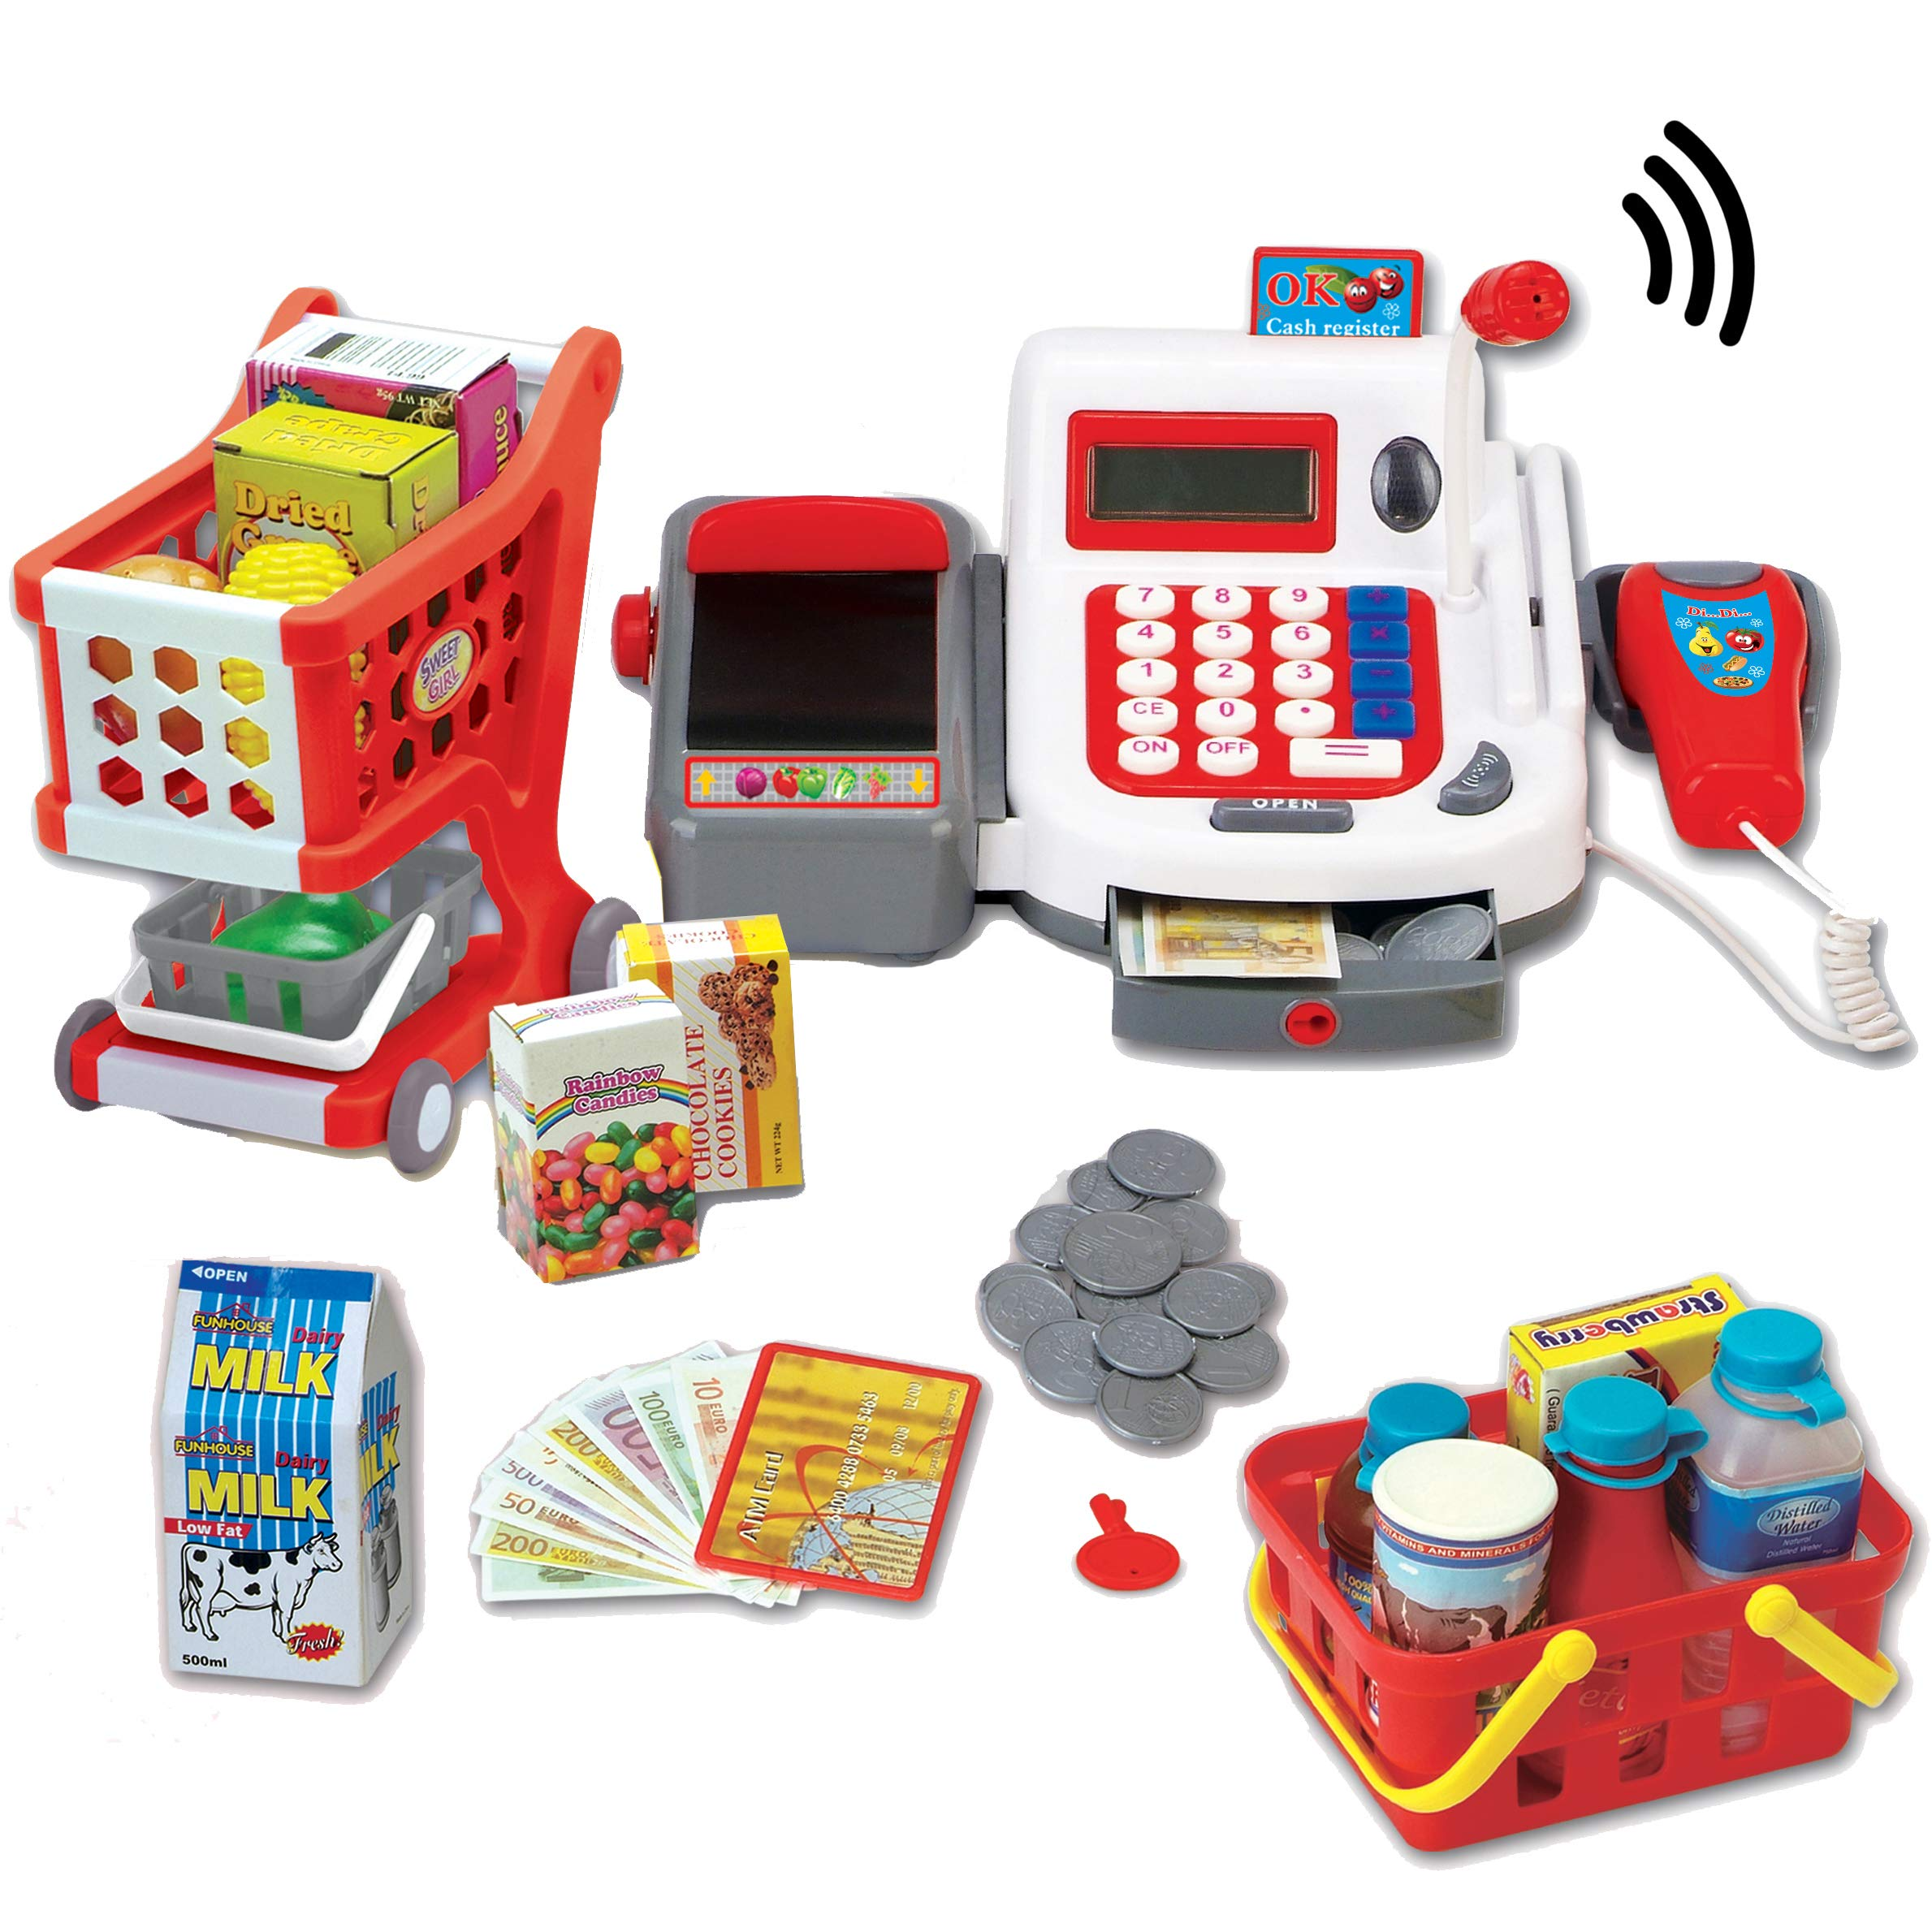 Liberty Imports Multi-Functional Educational Pretend Play Electronic Toy Cash Register with Microphone, Scanner, Scale, Calculator, Credit Card Reader, Shopping Basket and Groceries (Deluxe) by Liberty Imports